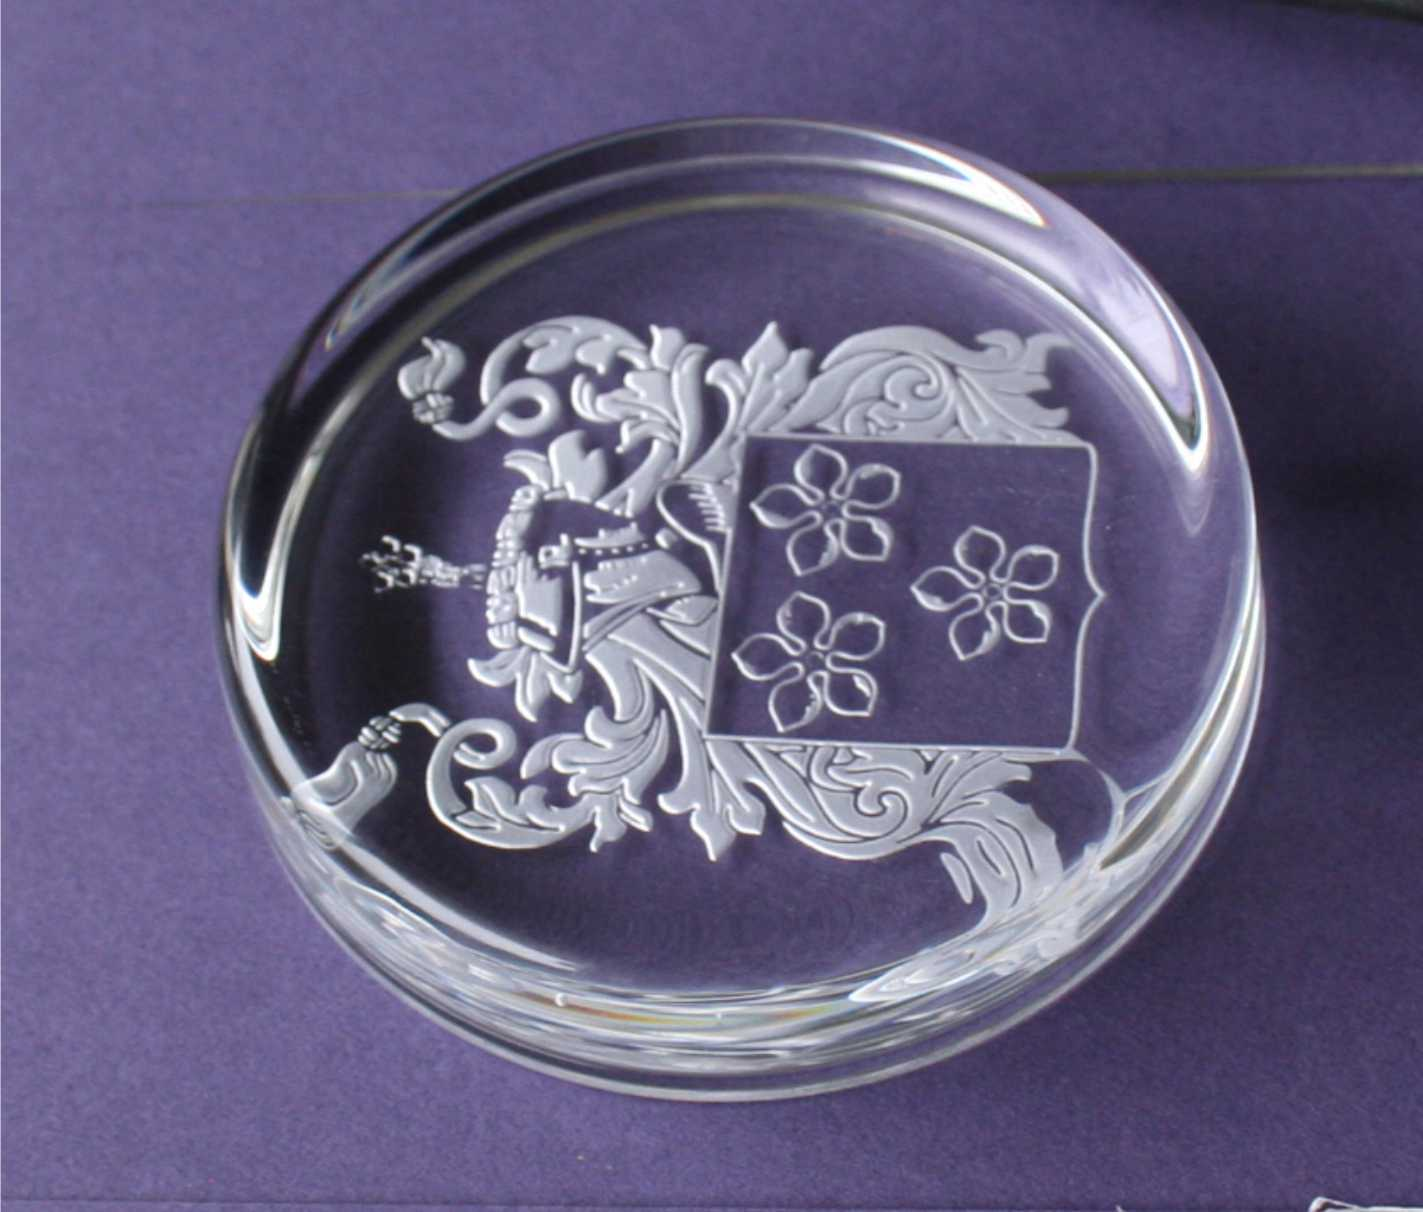 Engraved Coat of Arms on paperweight